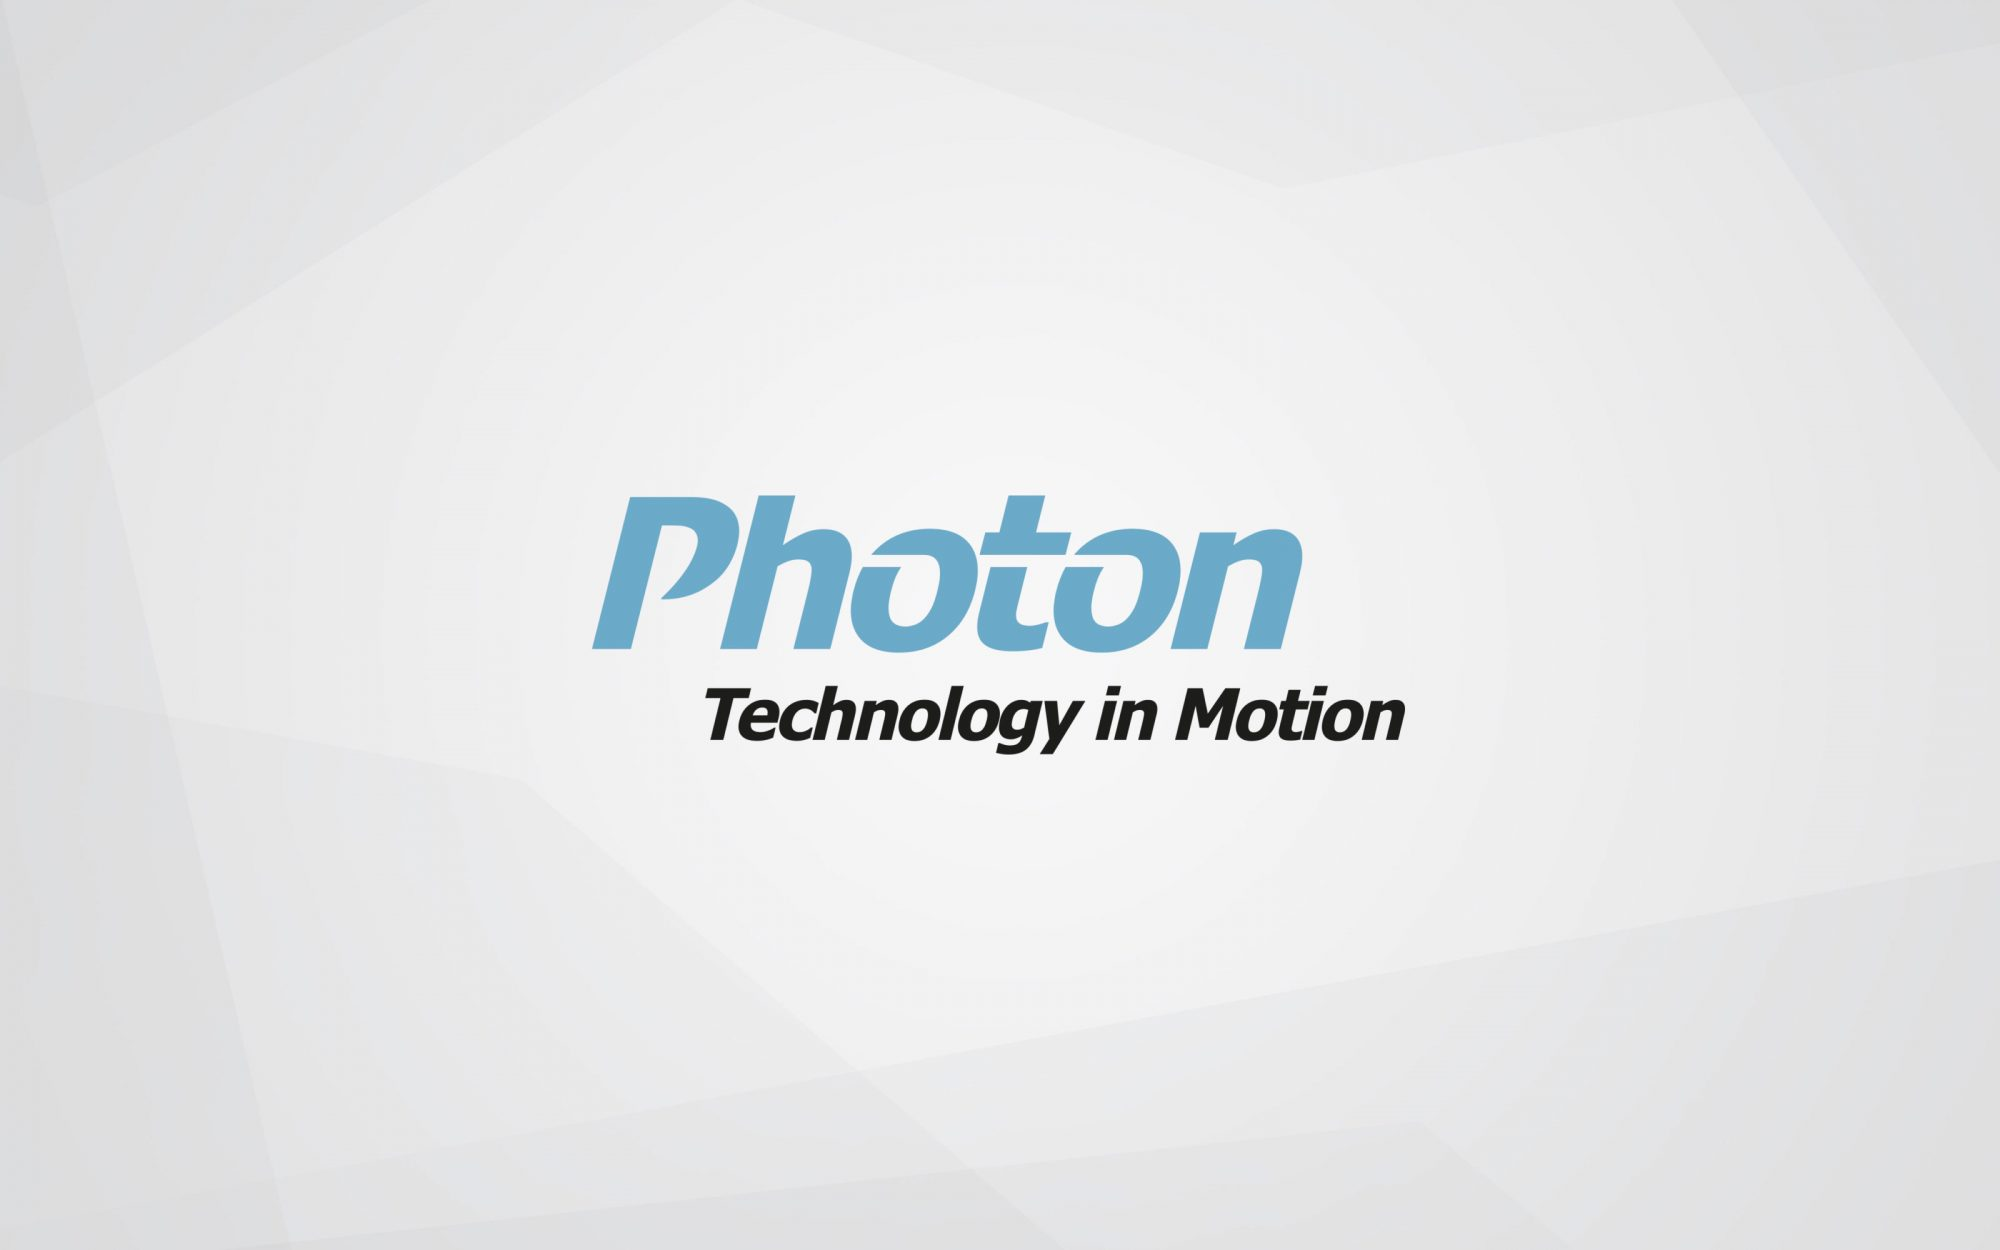 GRACO-PhotonAG-Logo-Technology-in-Motion